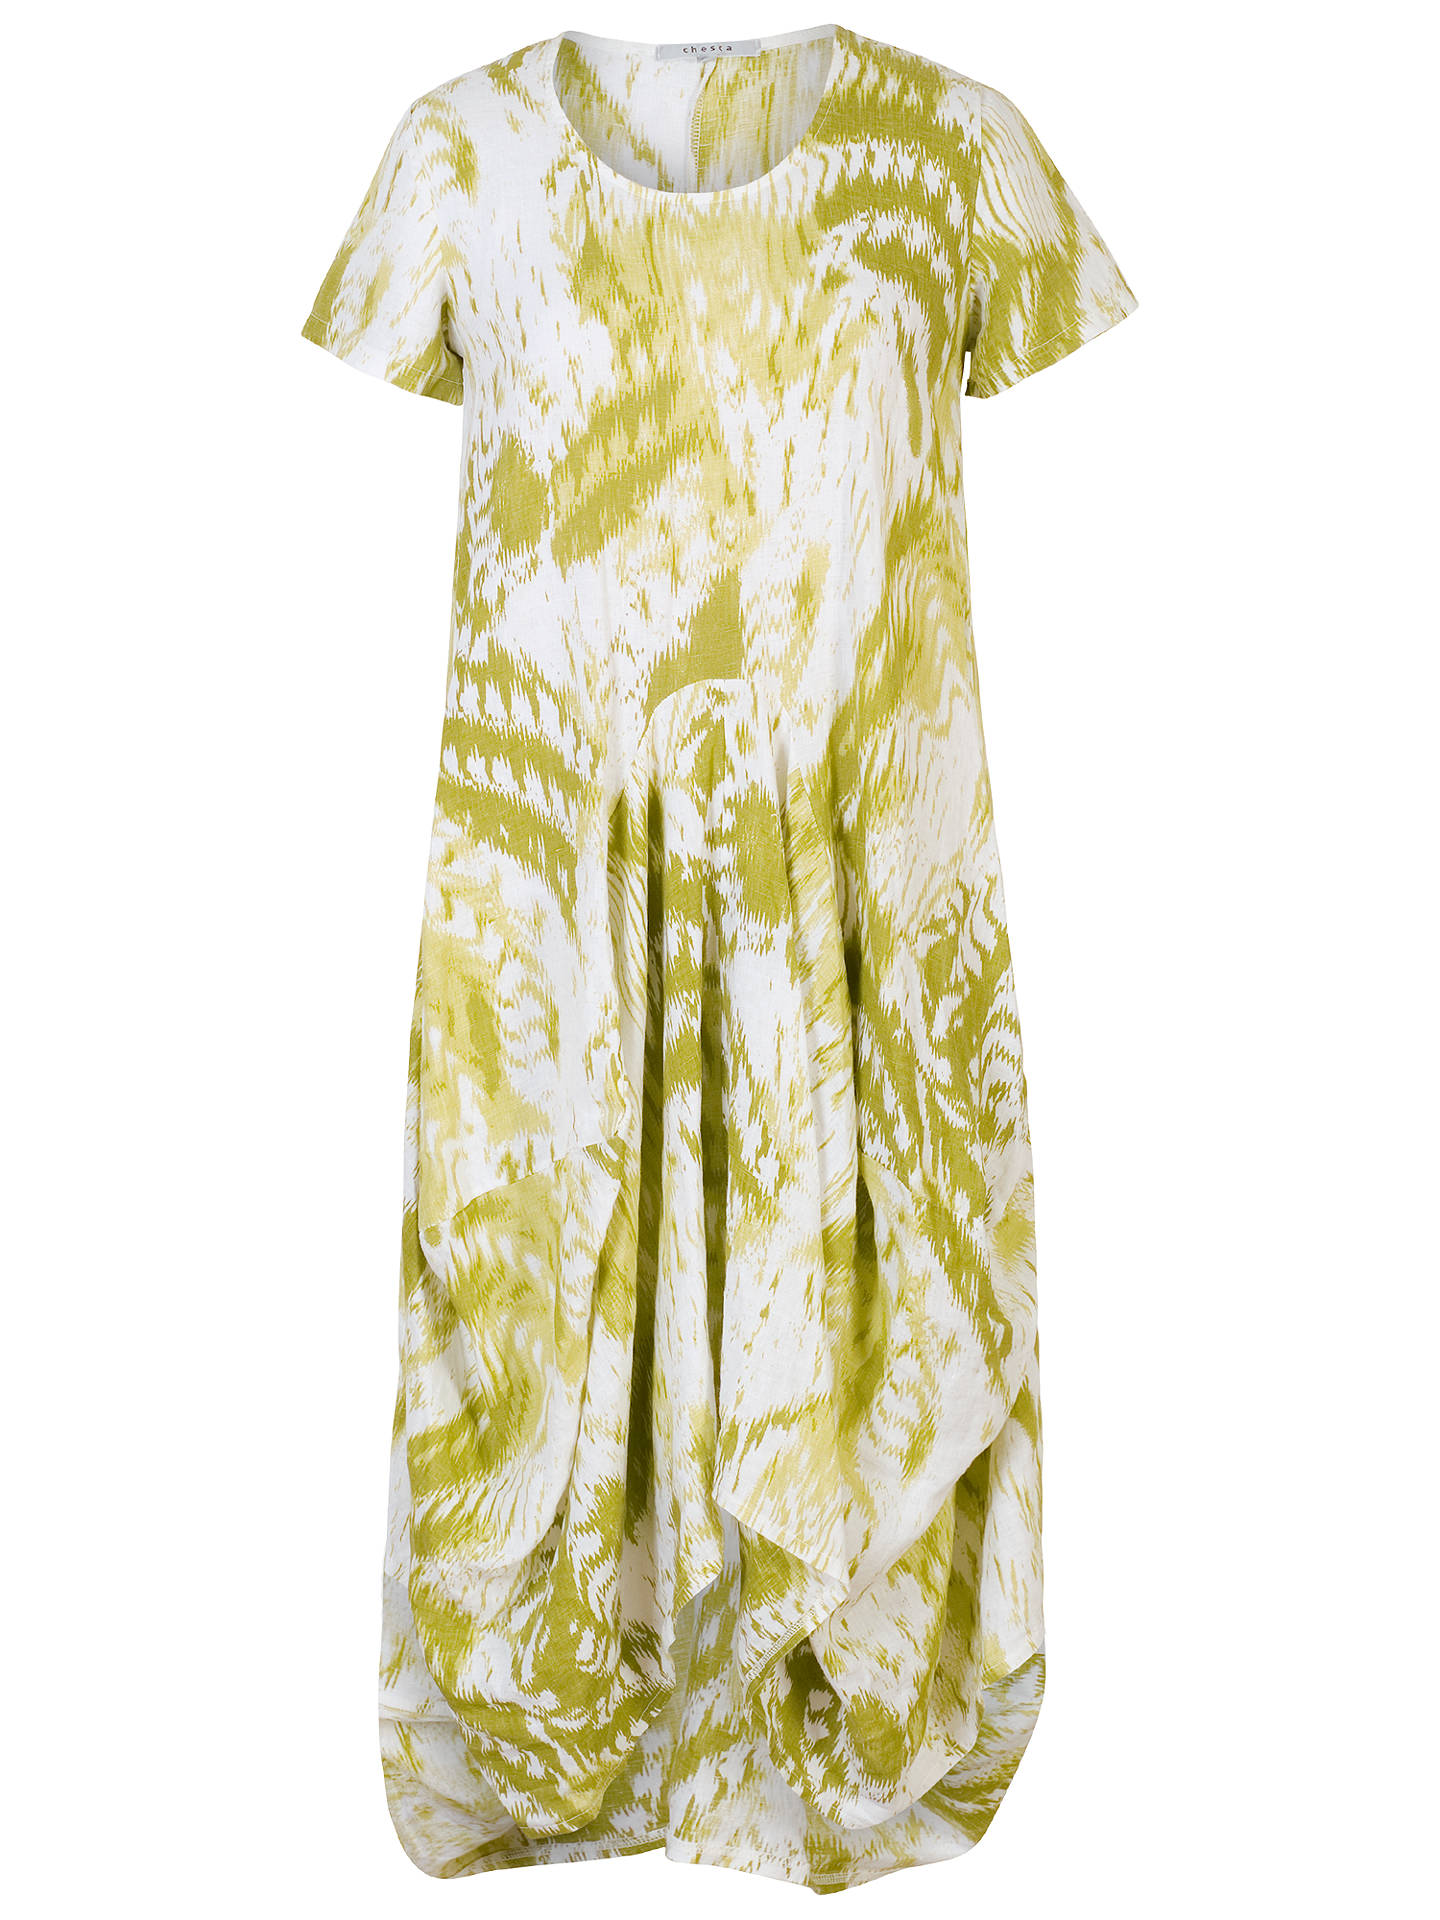 BuyChesca Printed Drape Linen Dress, Apple Green/White, 16-18 Online at johnlewis.com